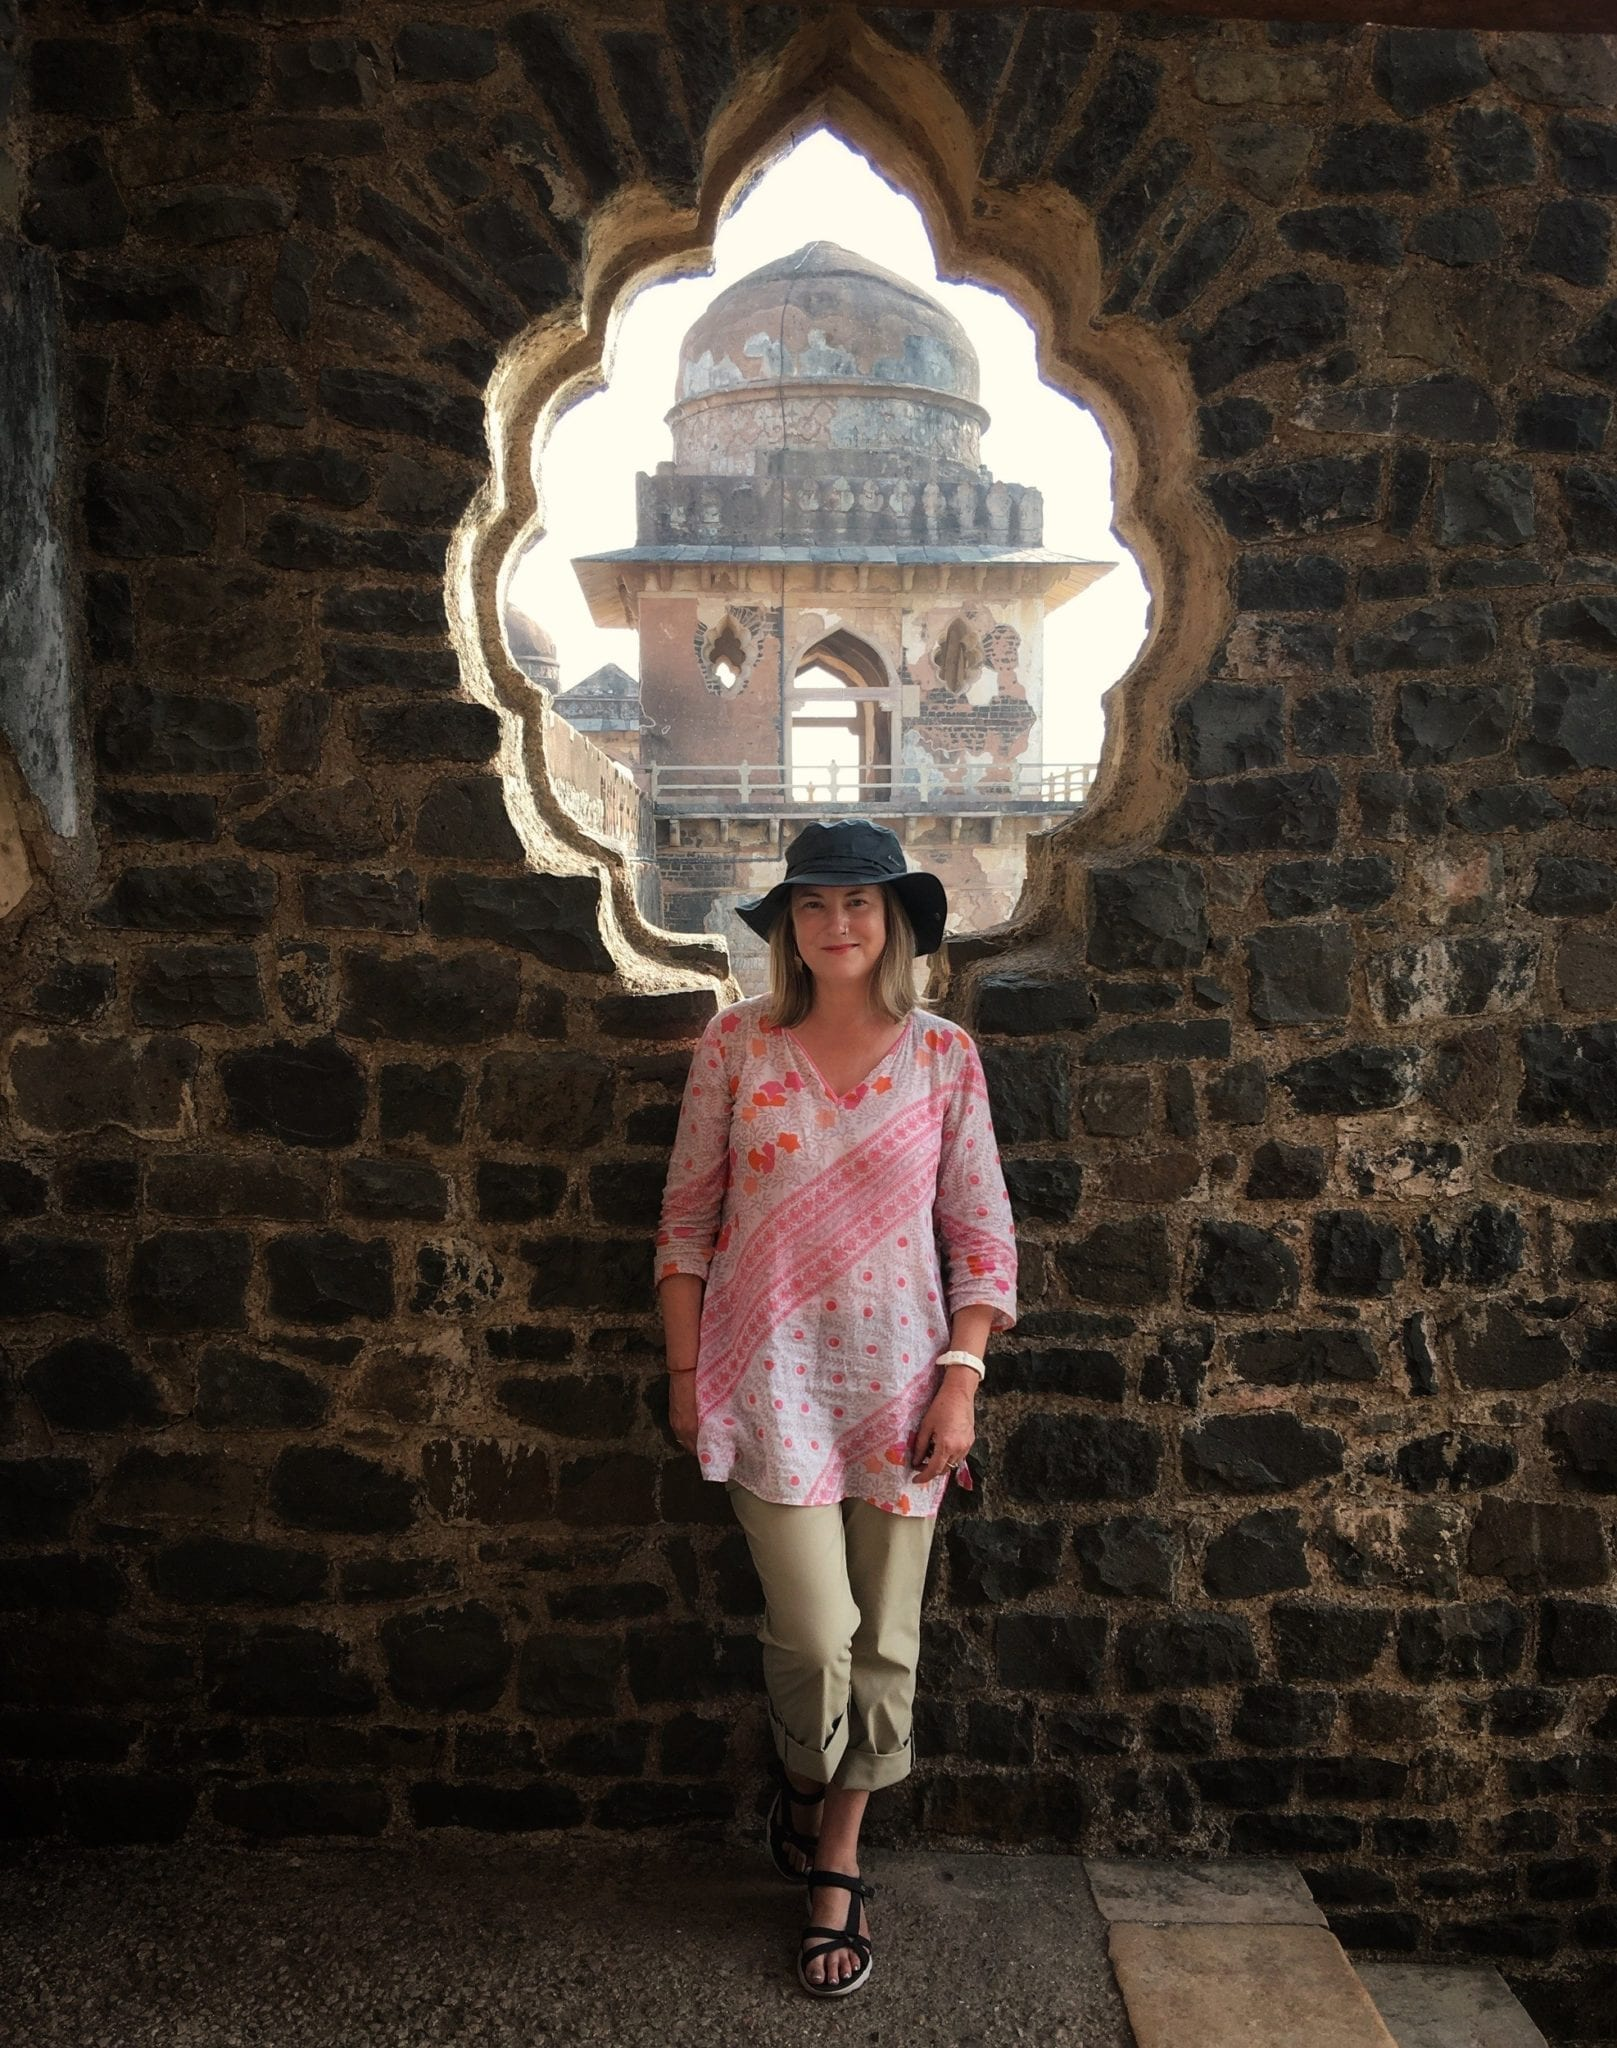 Solo Female Travel in India - Is it Safe? - Adventurous Kate